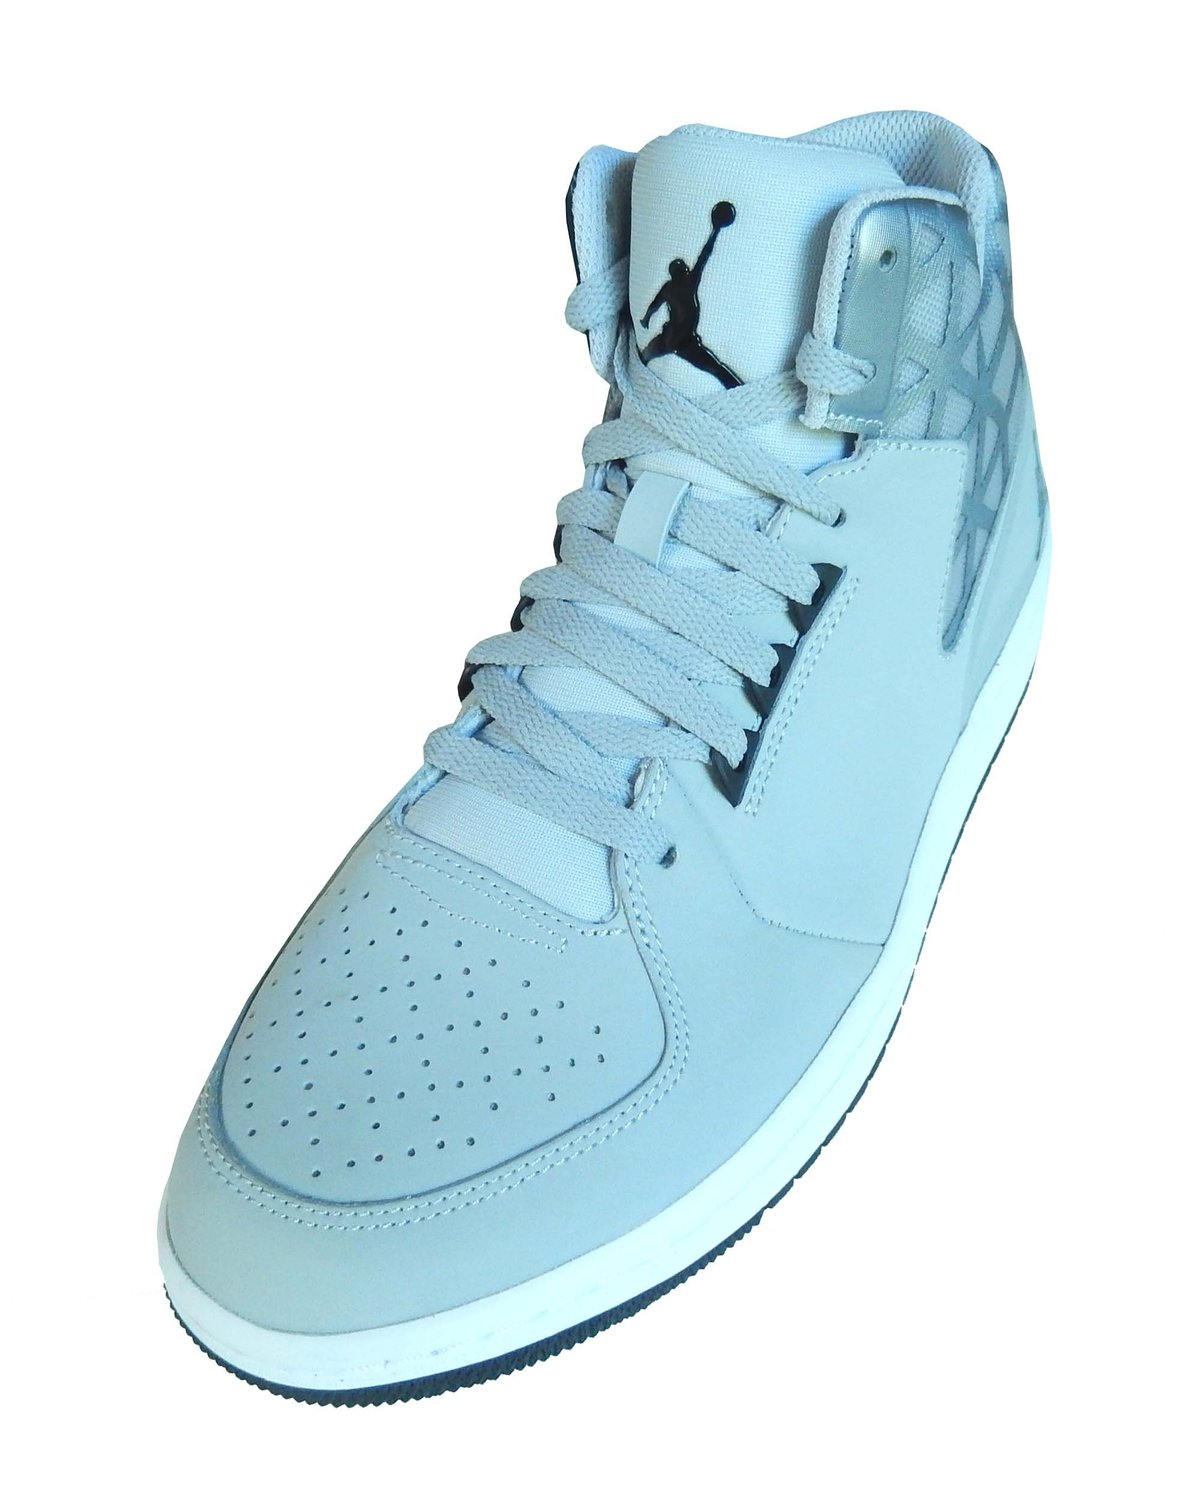 new concept ec1ac 8a82a Get Quotations · Nike Men s Jordan 1 Flight 3 Basketball Sneakers Grey Black  White